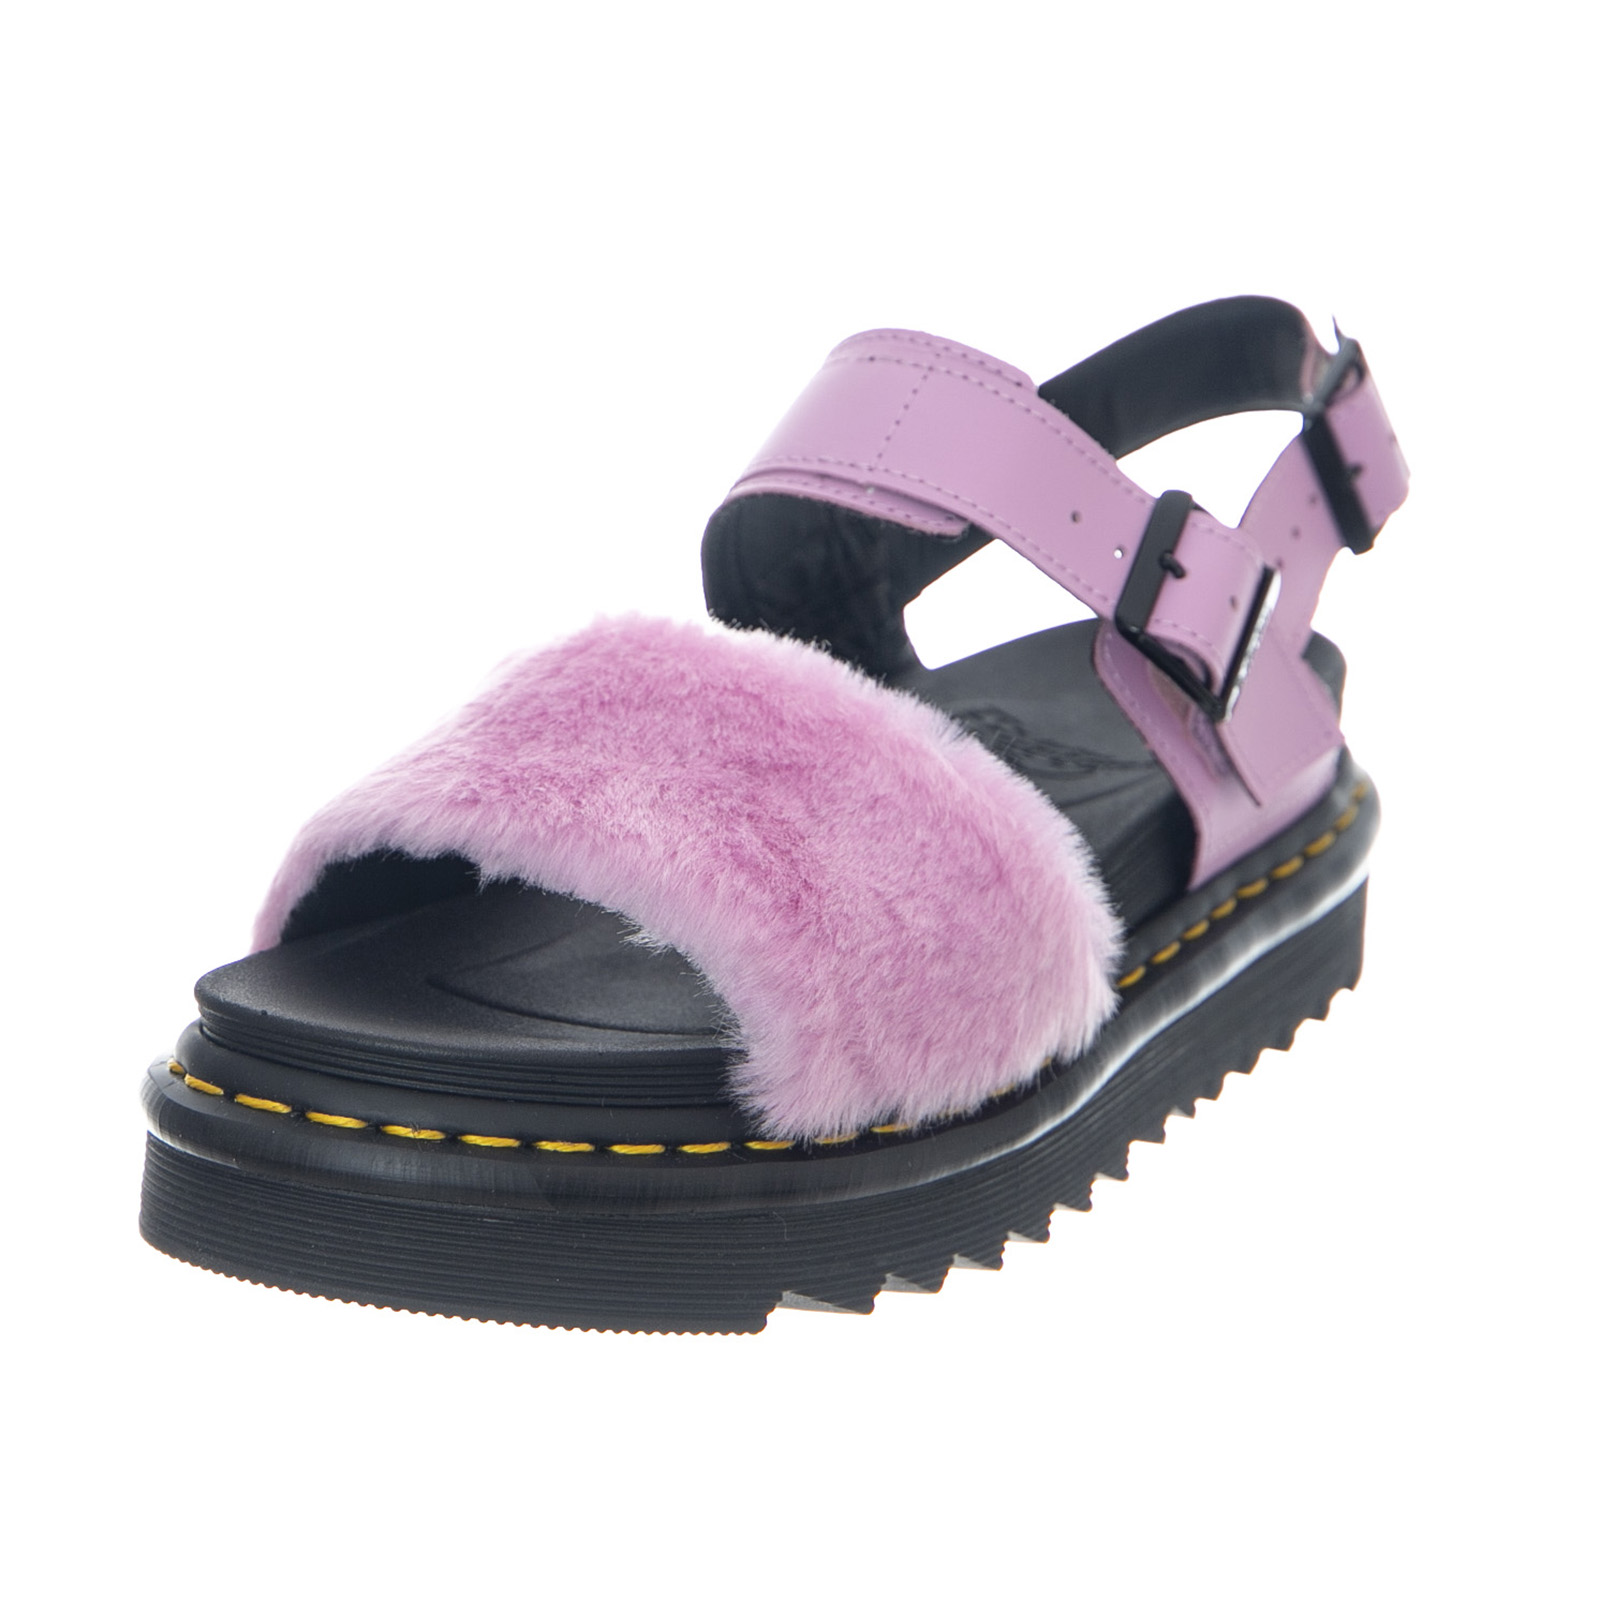 Details about Dr.Martens Voss Fluffy Mallow Pink Hydro Leather + Toby Ladies Sandals Pink